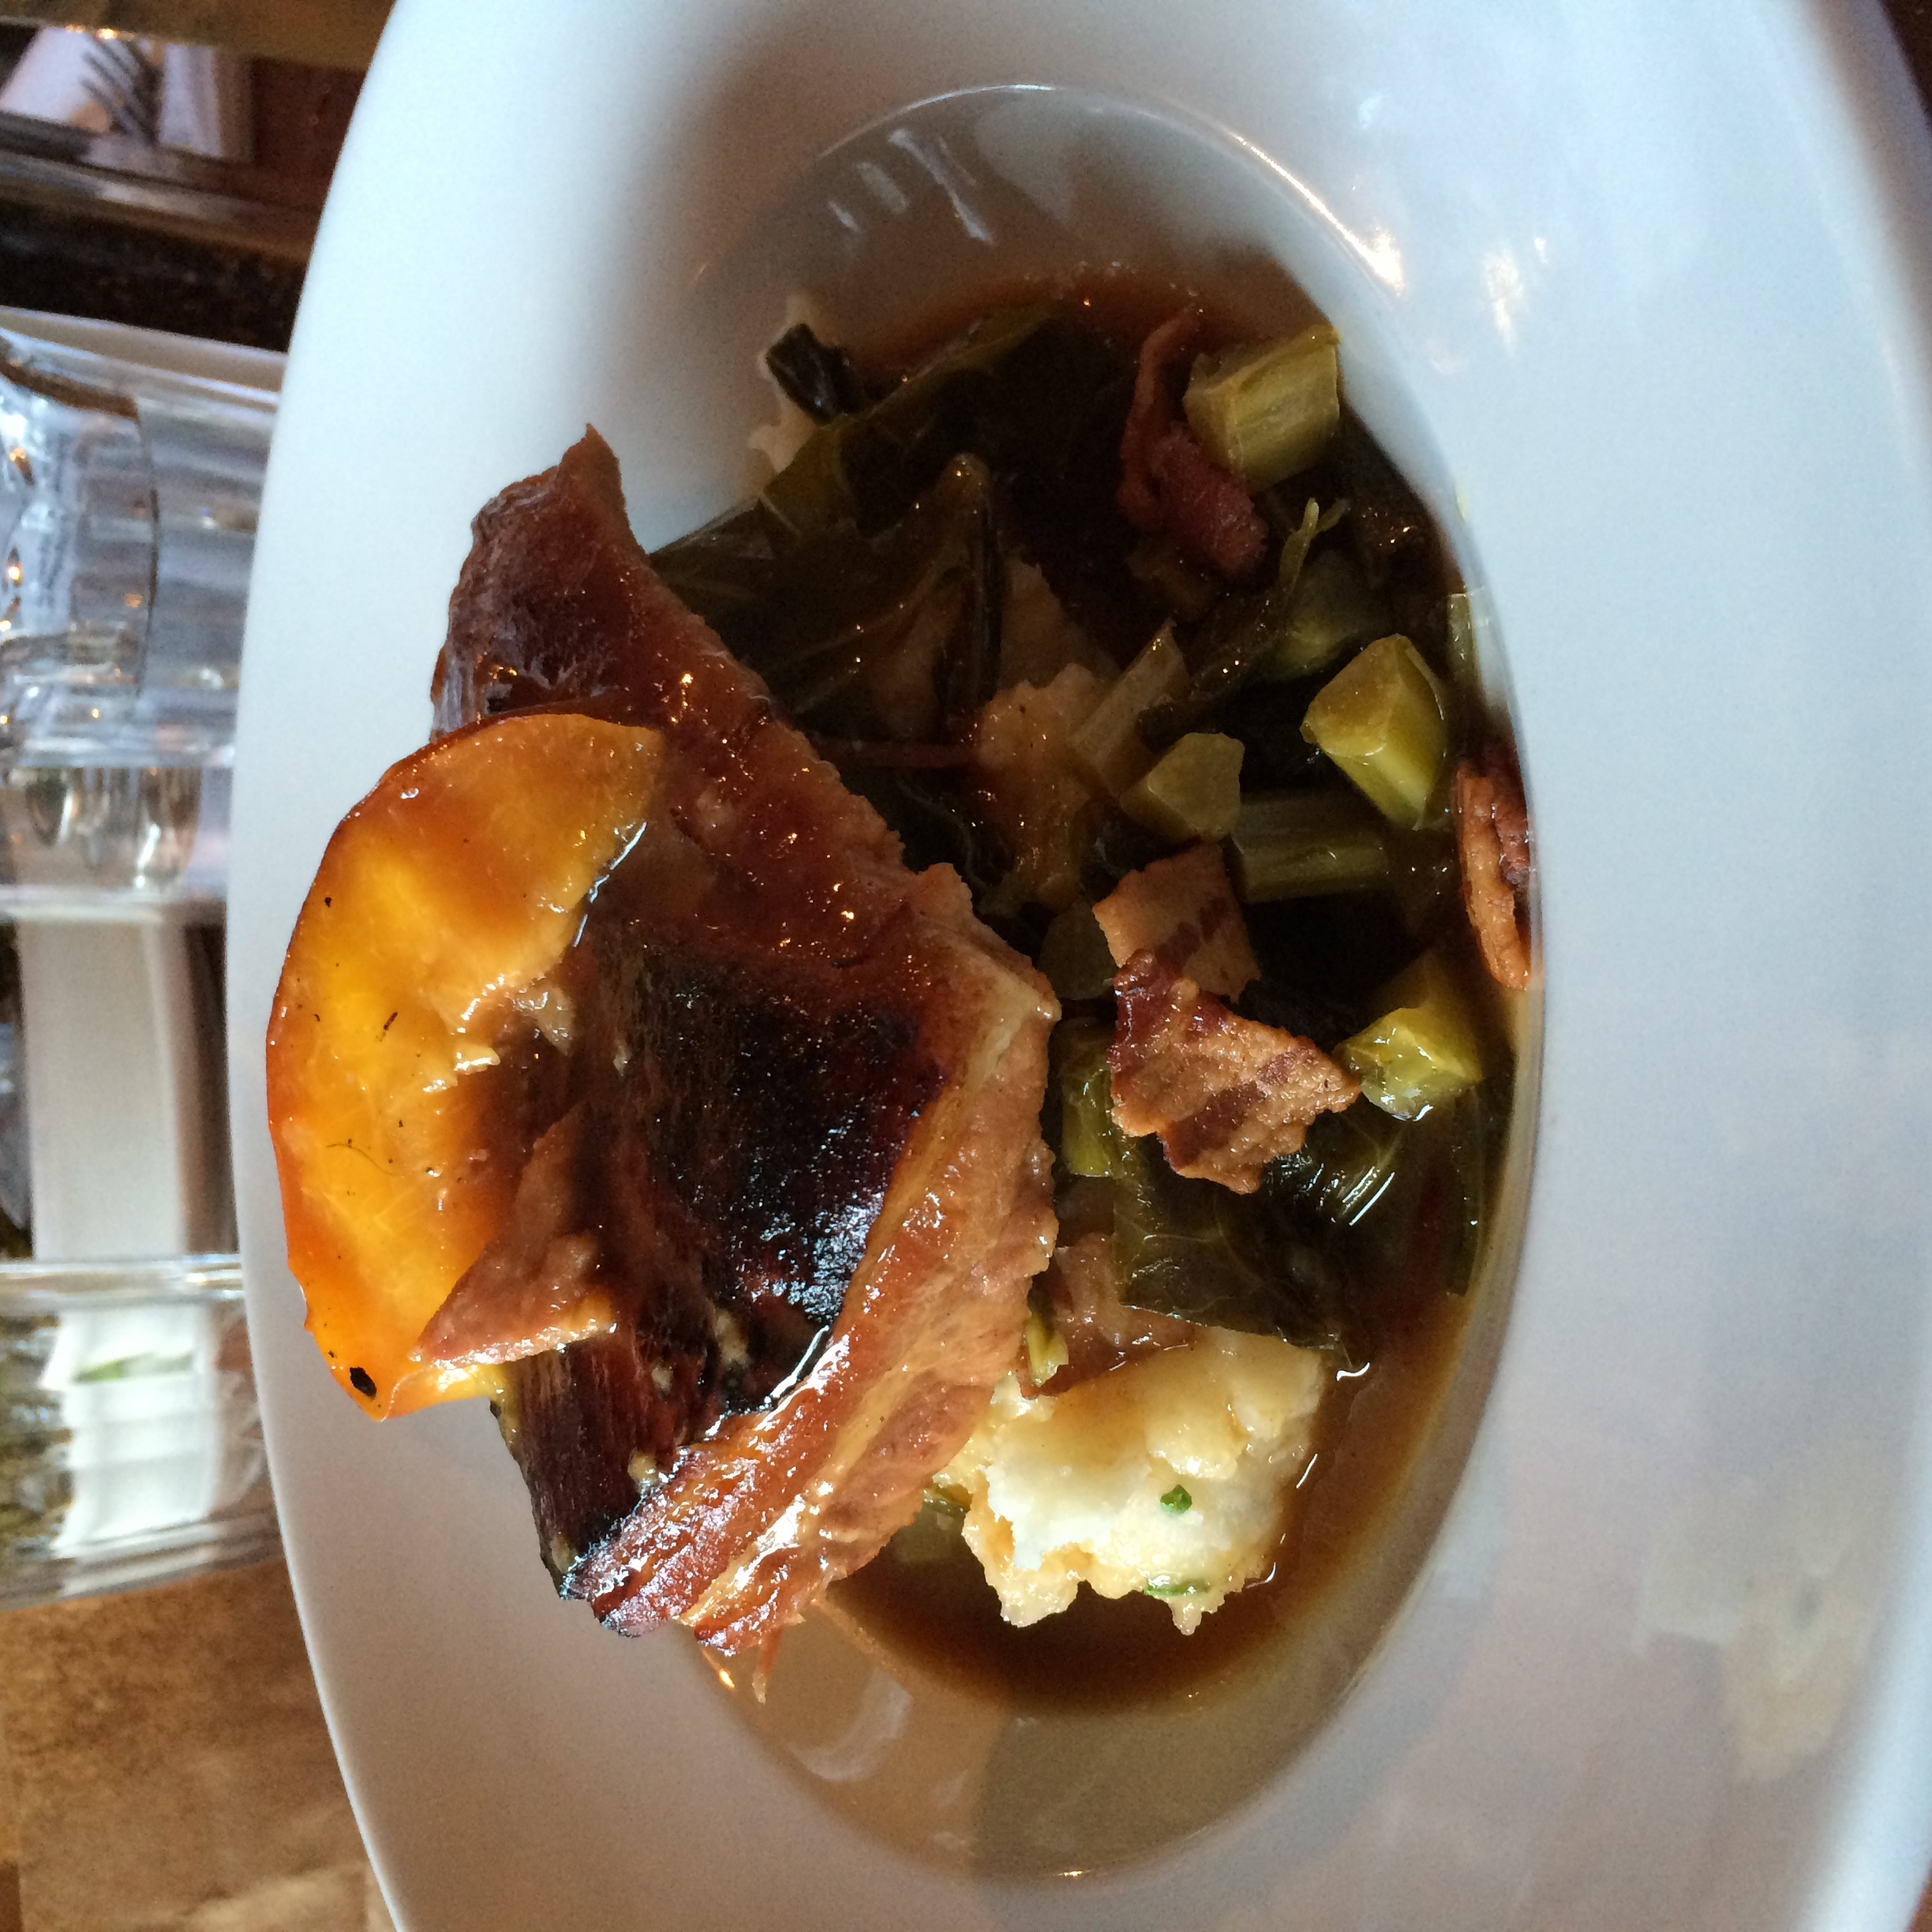 Cider-braised pork belly, bacon-braised collard greens, mash potatoes and a grilled apple